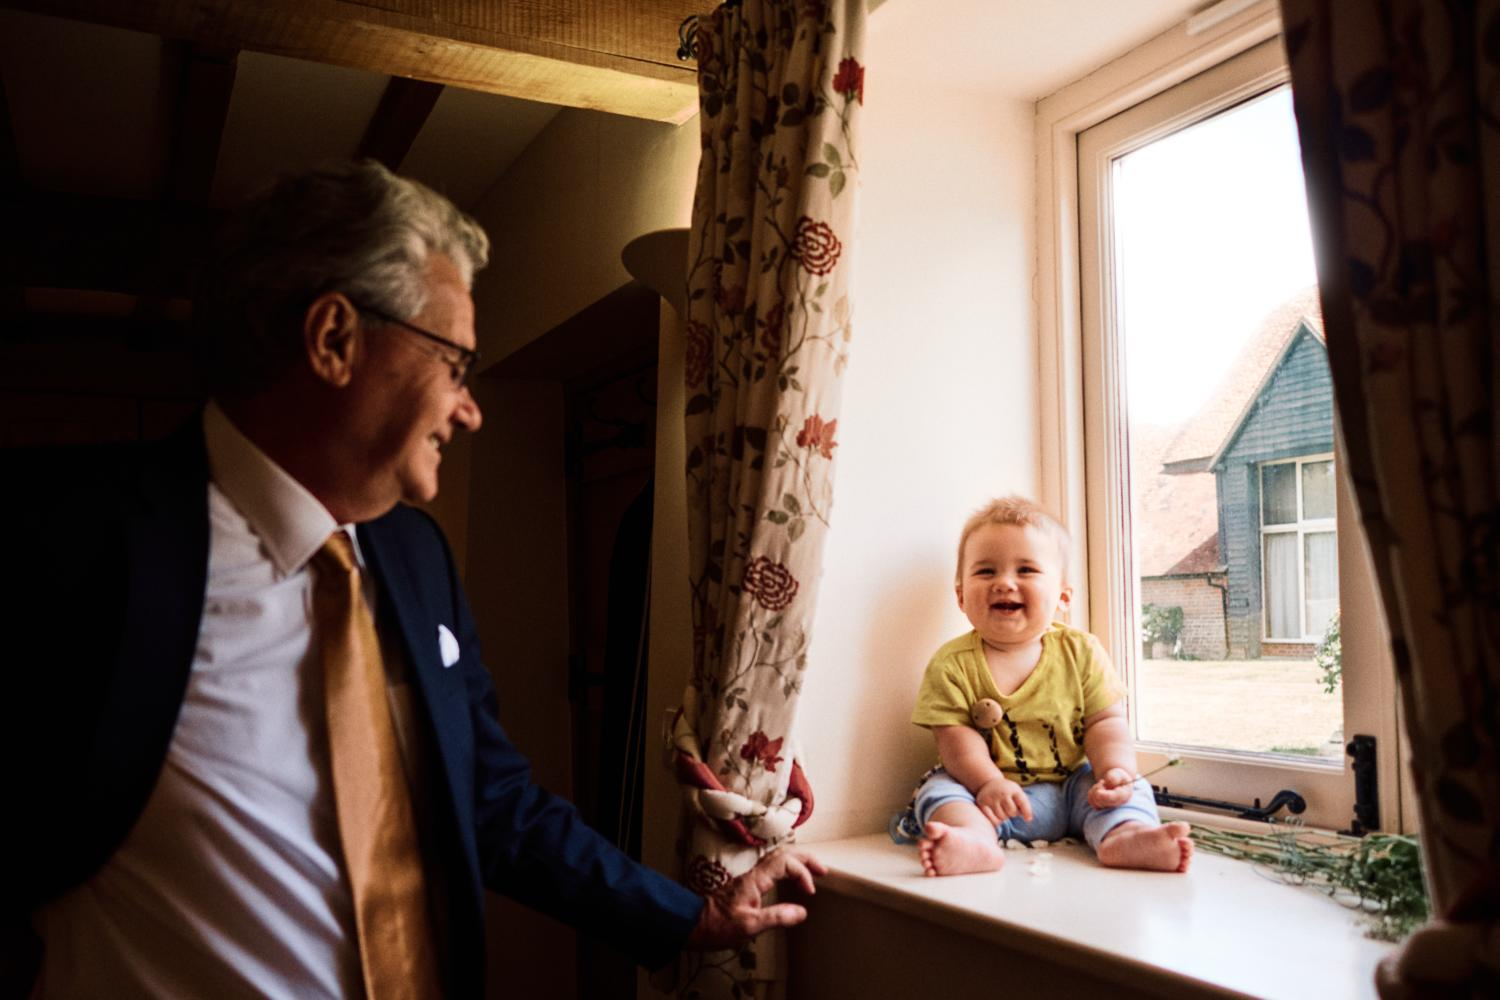 A laughing baby sits in a window frame